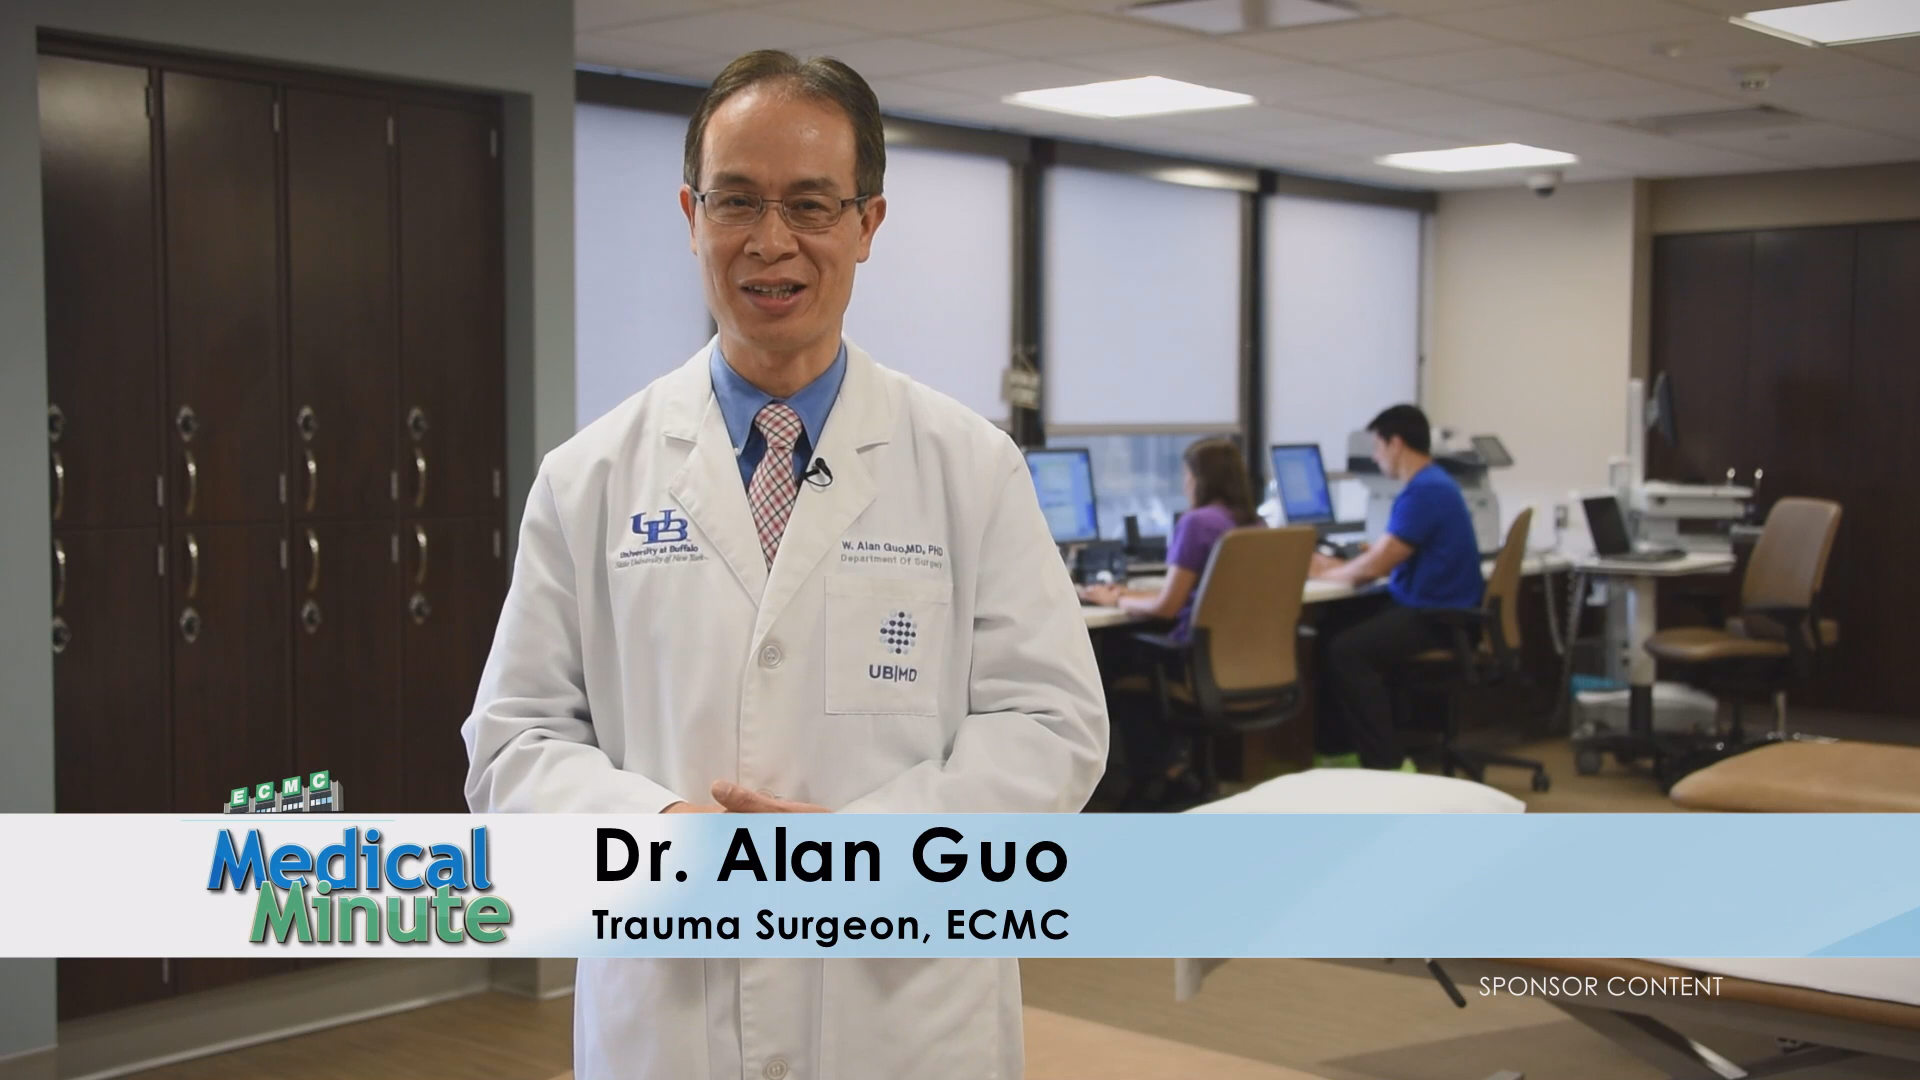 ECMCMedicalMinute Dr.AlanGuo SwimmingSafety 071221 STILL